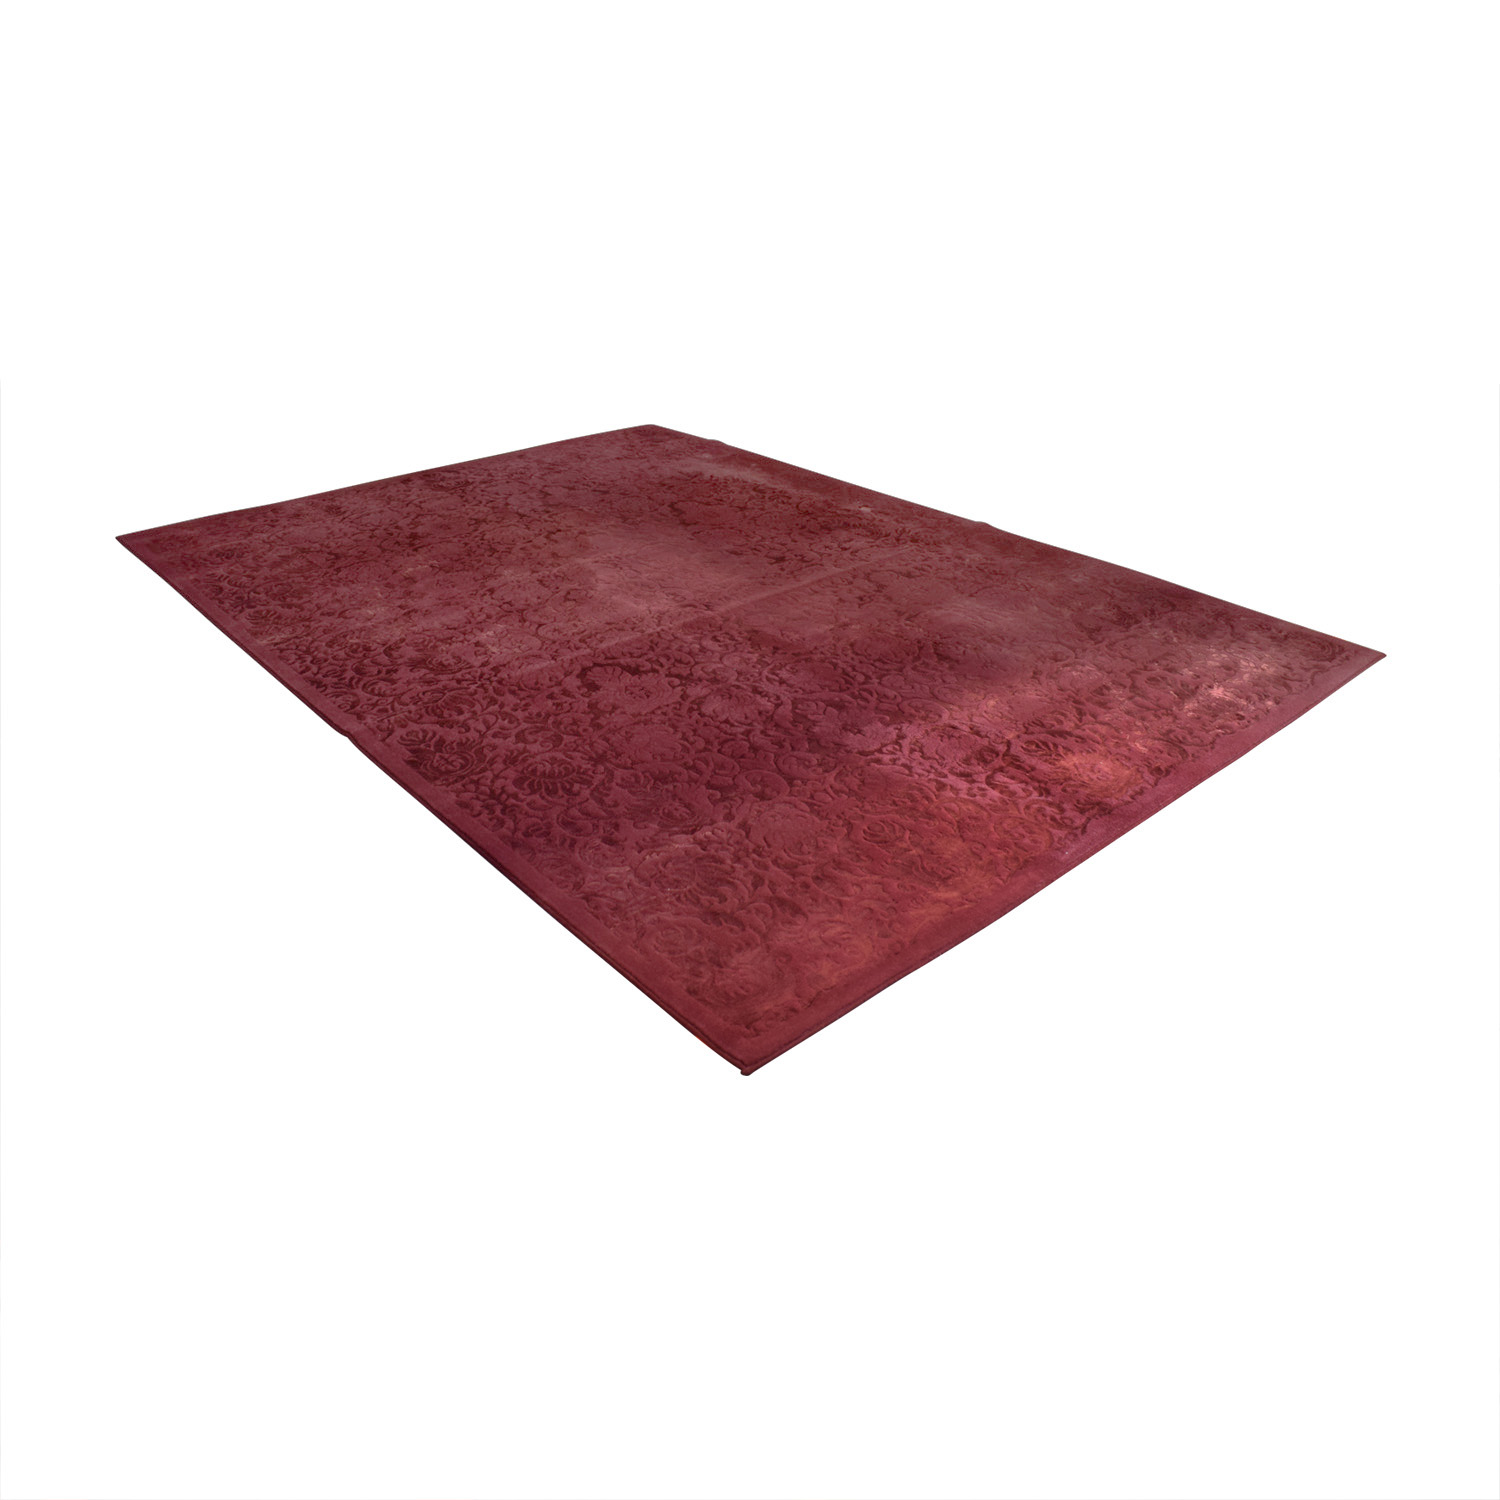 ABC Carpet & Home Damask Burgendy Wool Rug sale